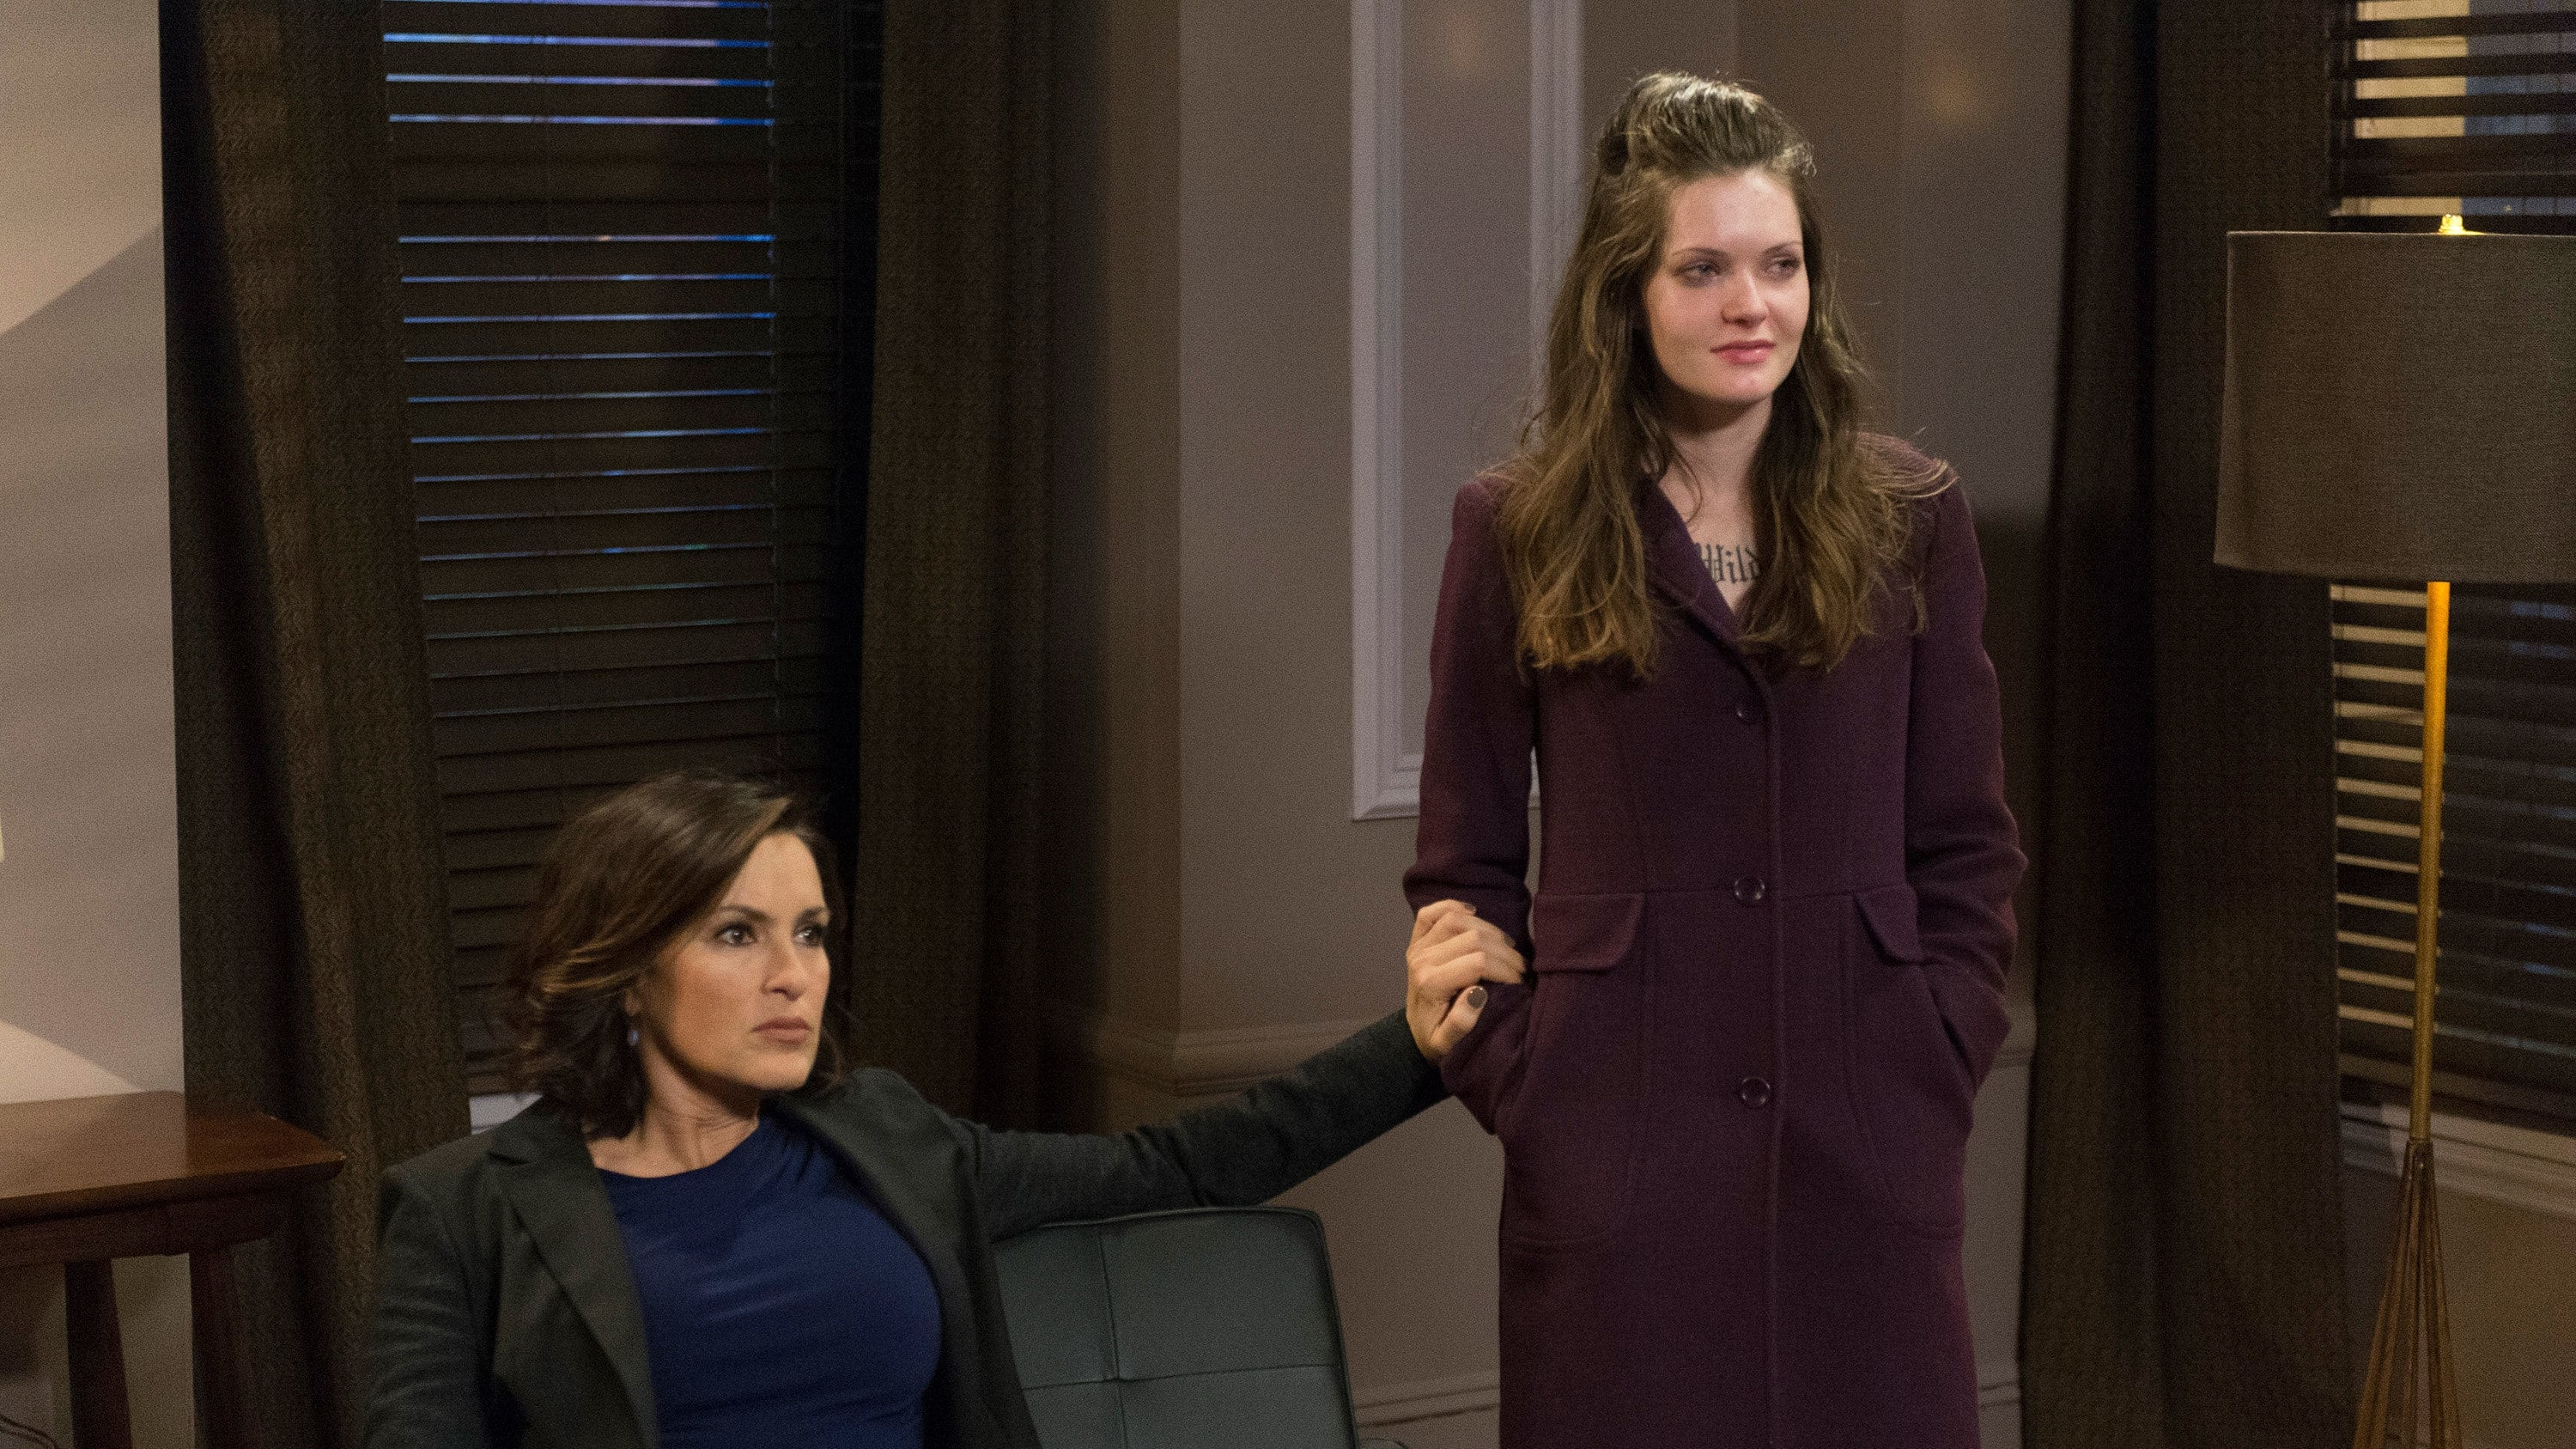 Law & Order: Special Victims Unit - Season 15 Episode 19 : Downloaded Child